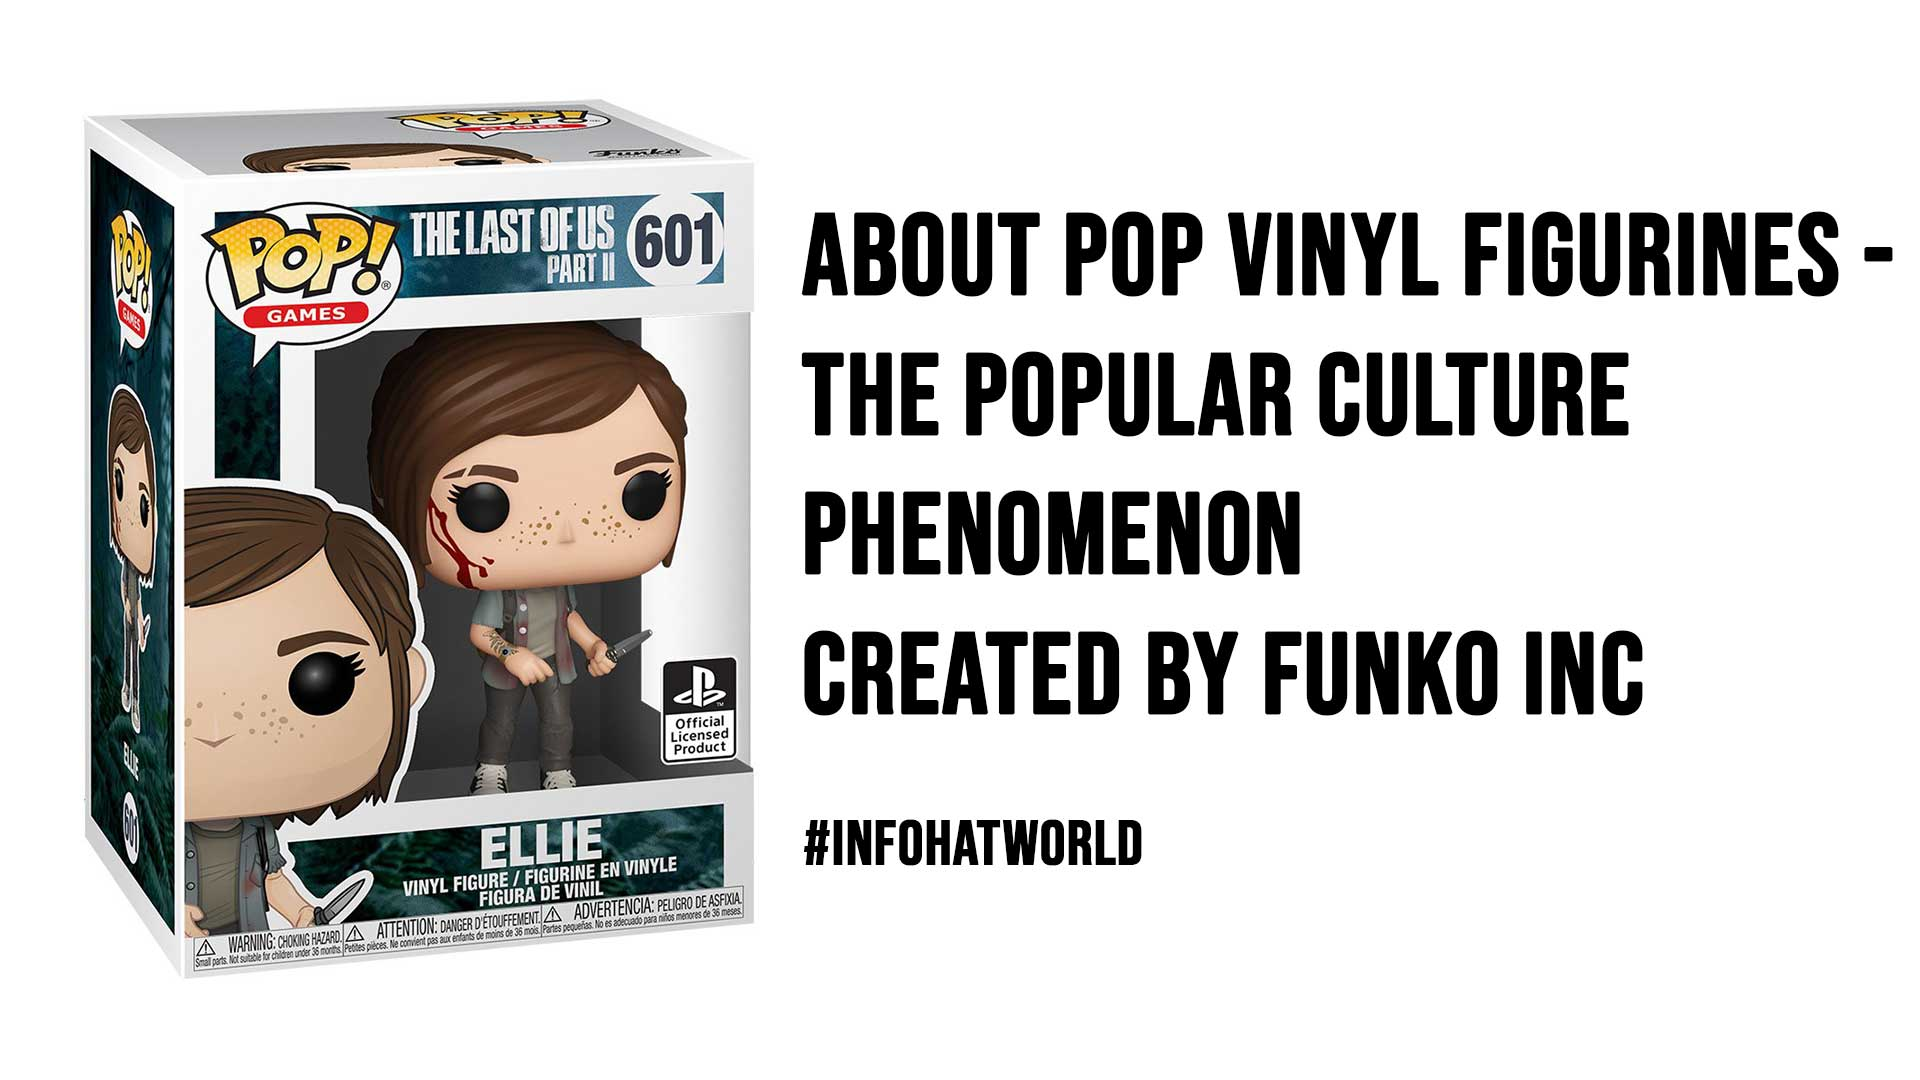 About Pop Vinyl Figurines The Popular Culture Phenomenon Created By Funko Inc